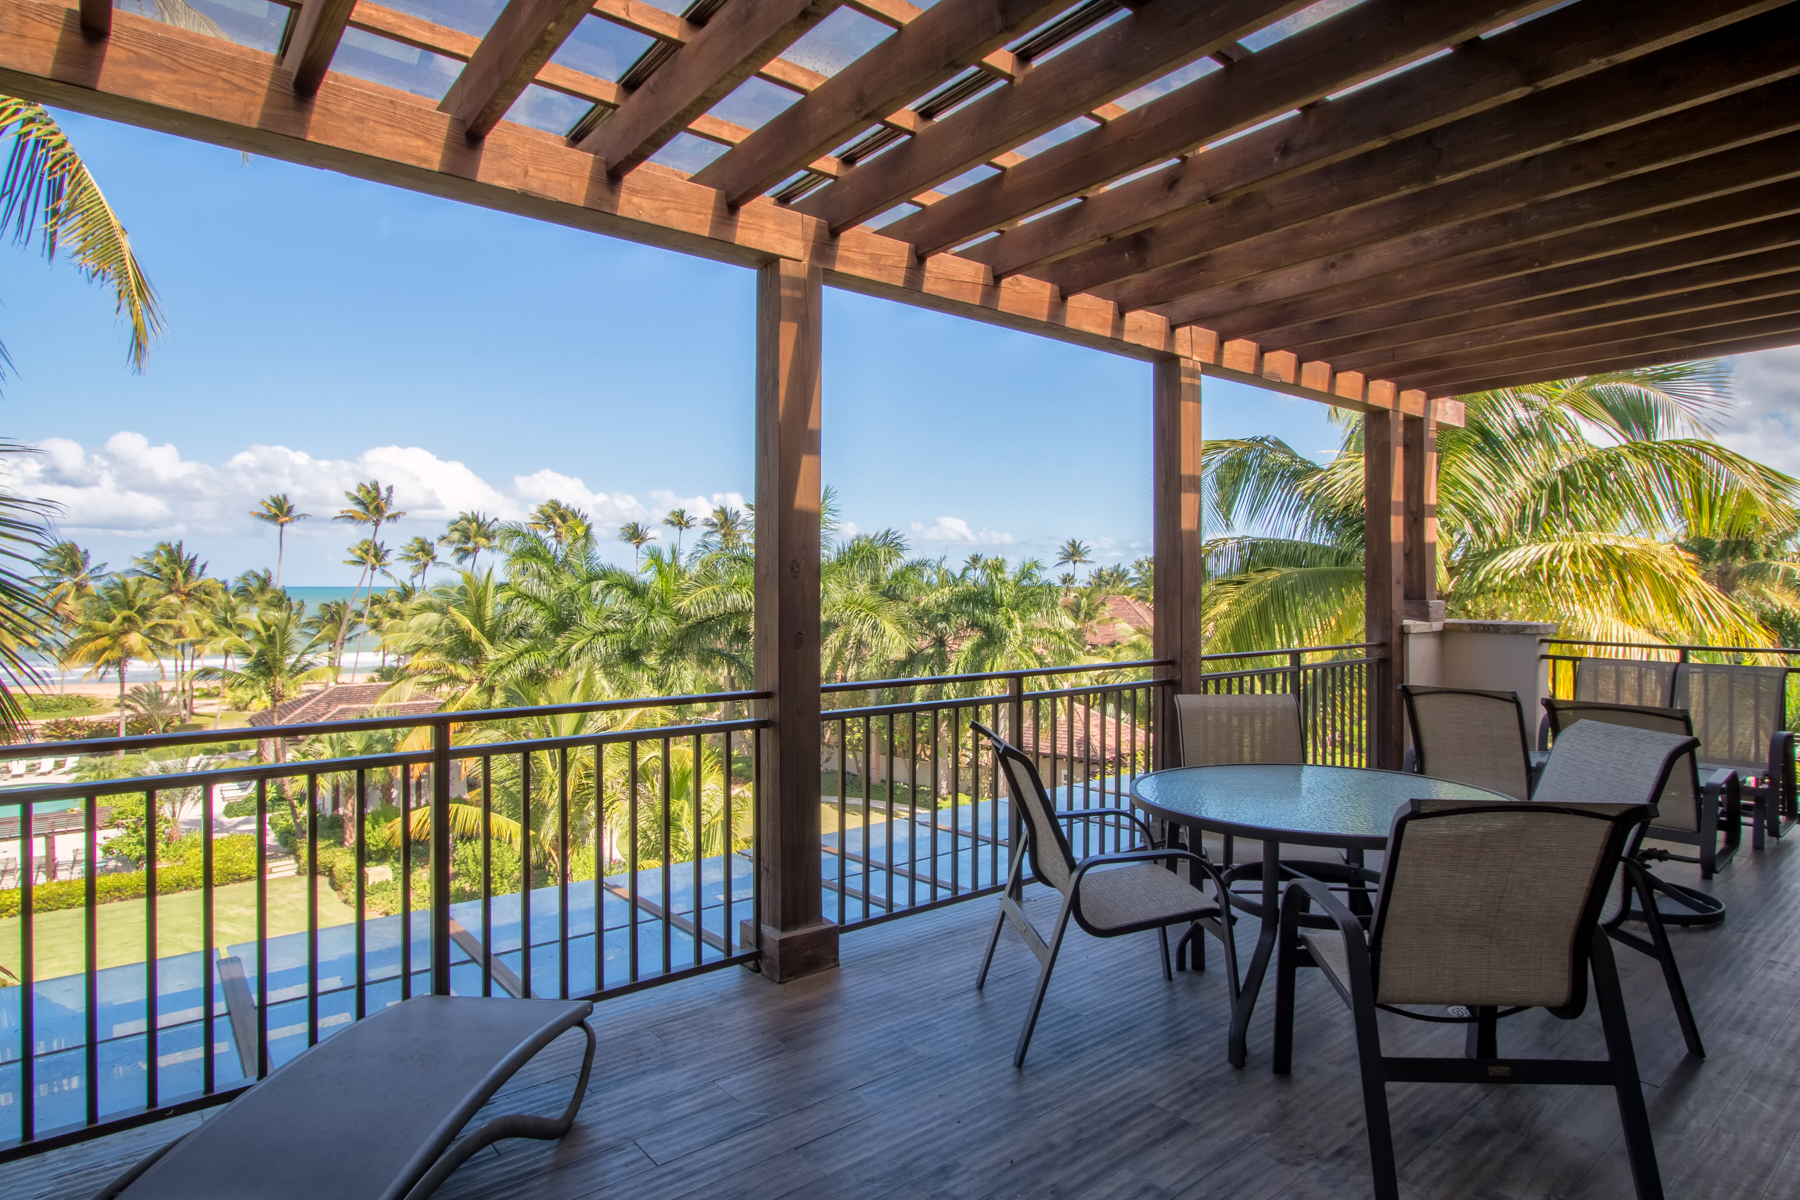 Additional photo for property listing at Beachfront Penthouse at Bahia Beach 417 Las Ventanas II, St. Regis Bahia Beach State Road 187 Km 4.2 Rio Grande, Puerto Rico 00745 Puerto Rico